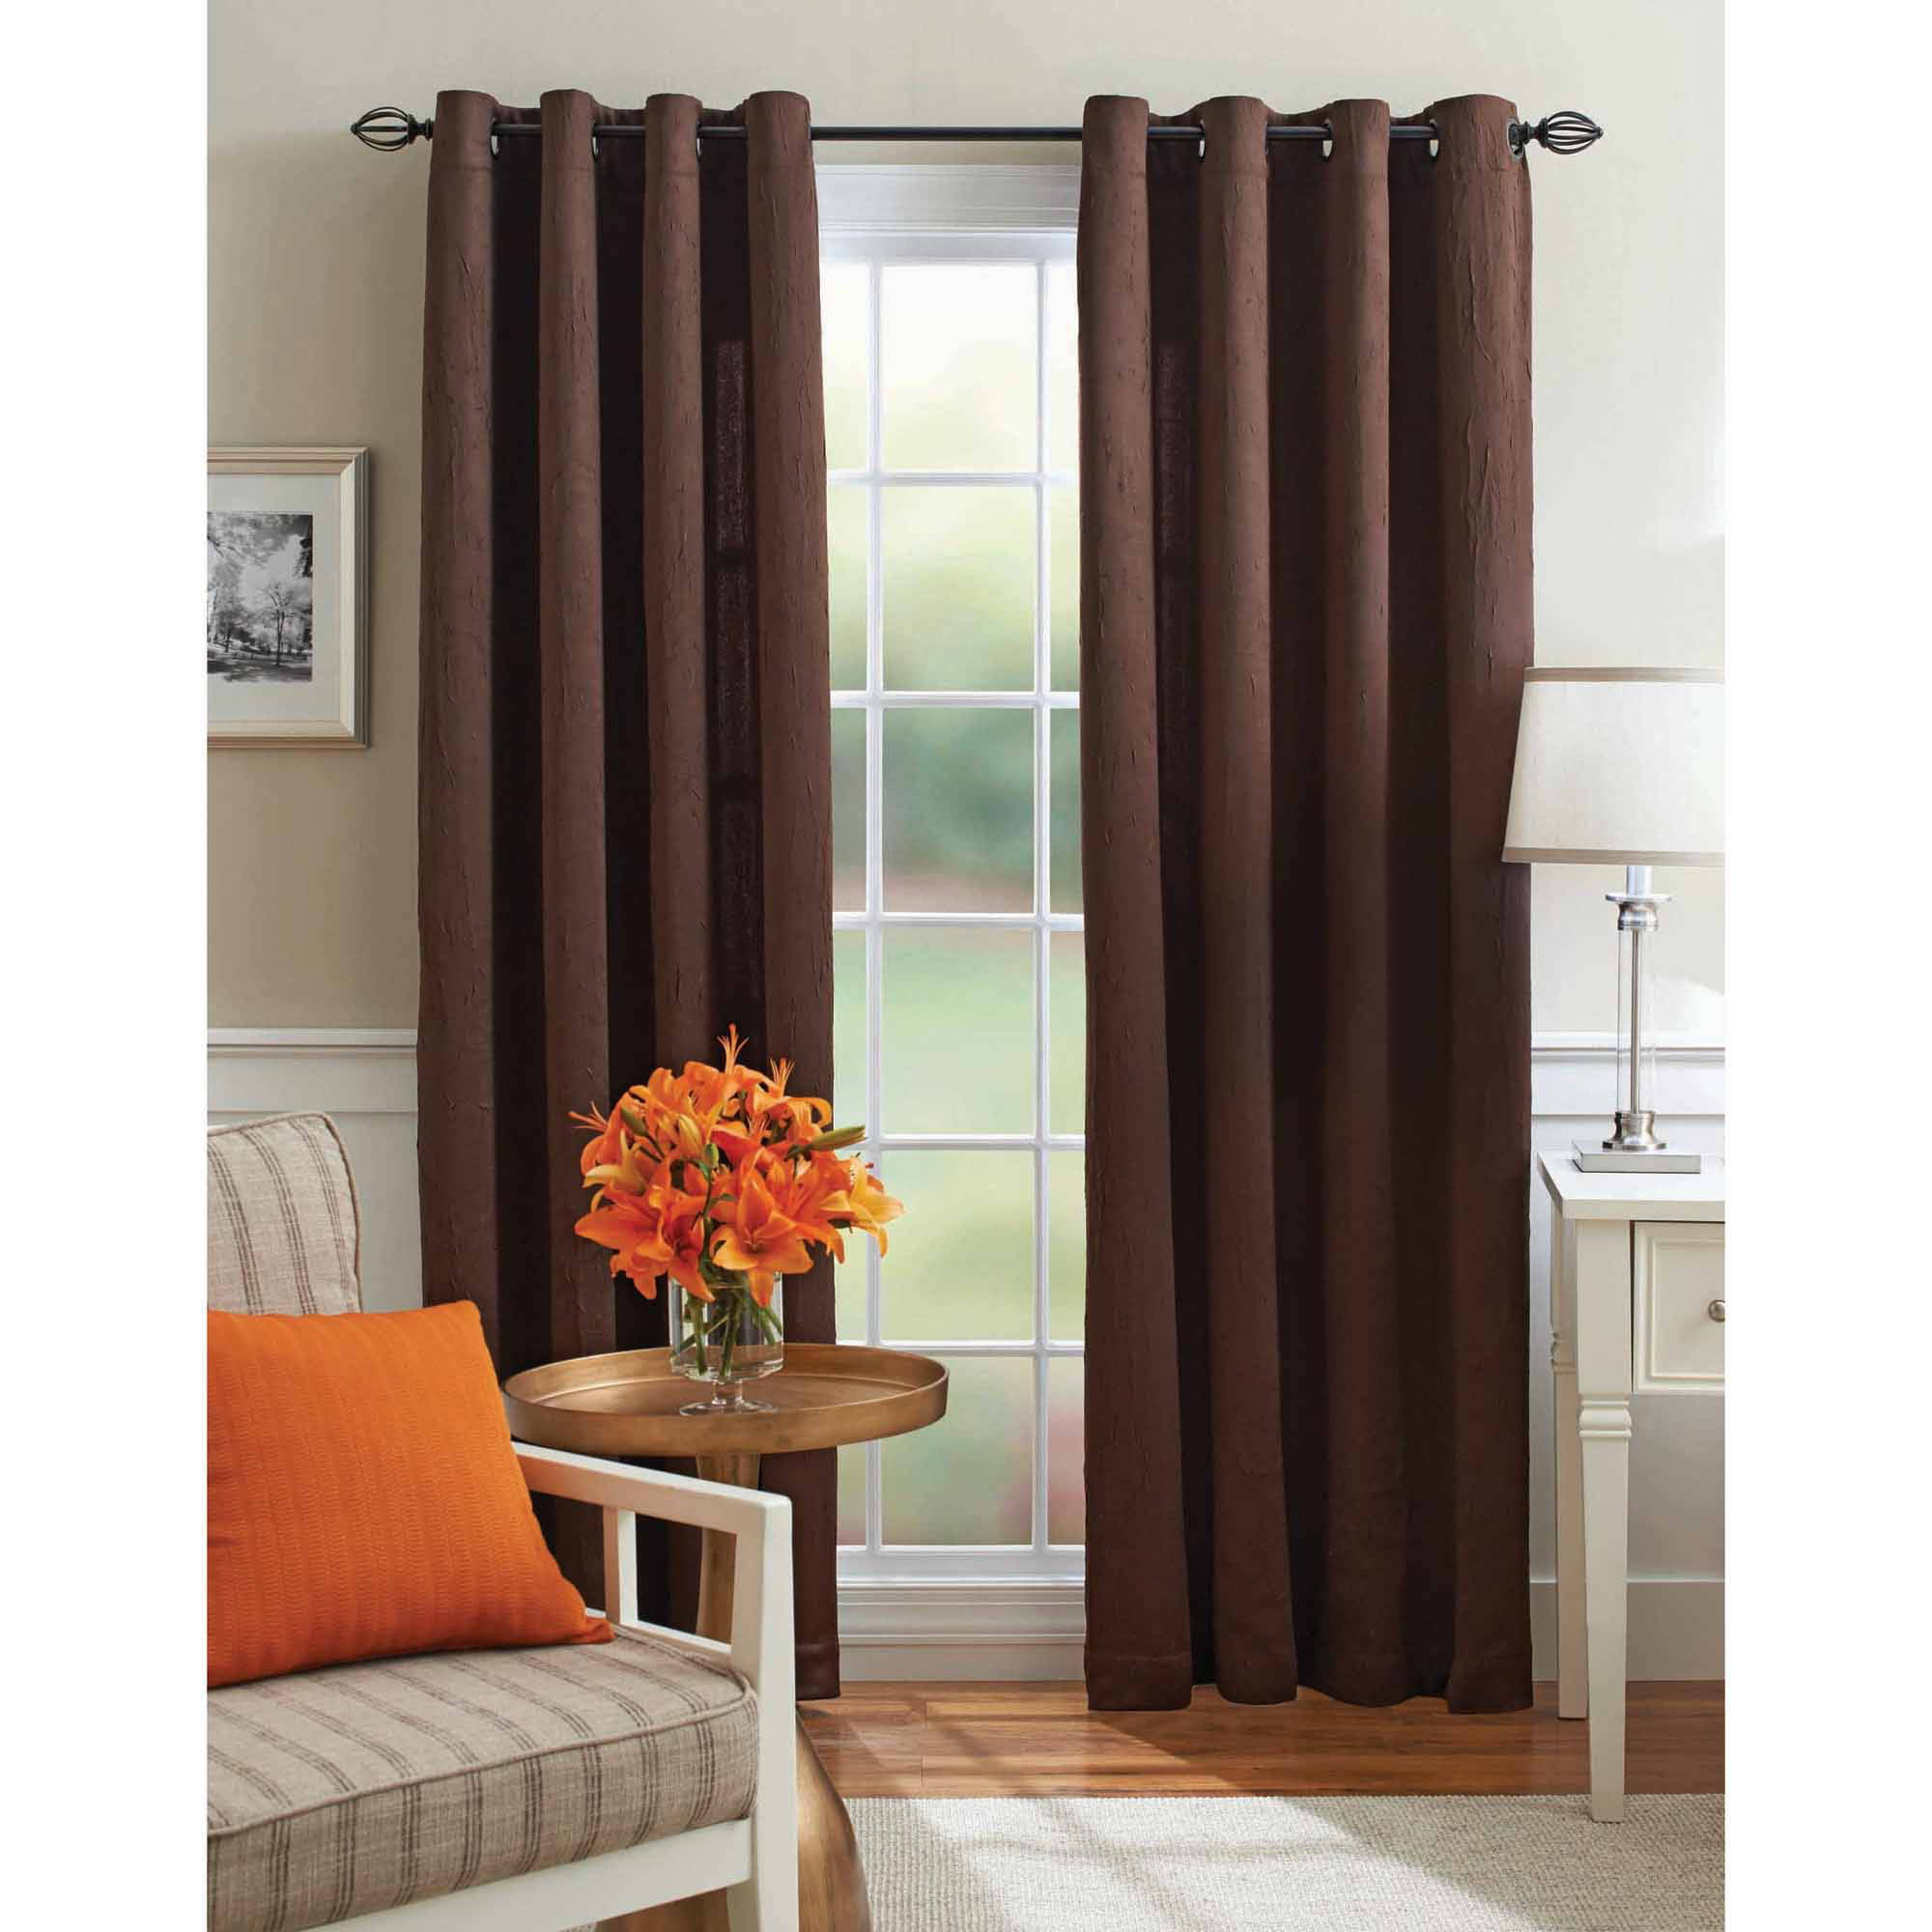 Walmart Curtains For Living Room Better Homes And Gardens Crushed Room Darkening Curtain Panel